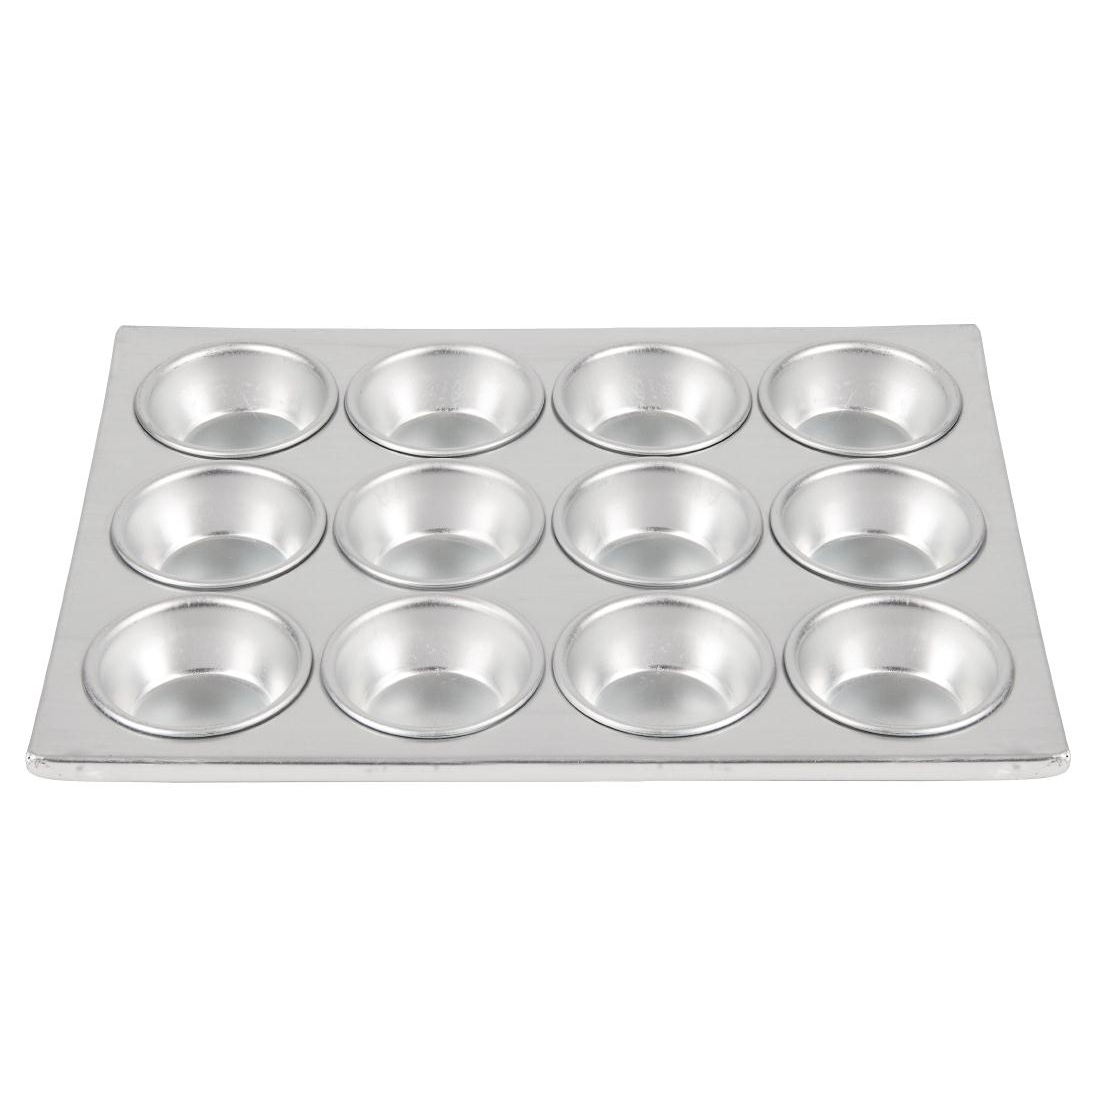 Vogue Aluminium 12 Cup Muffin Tray